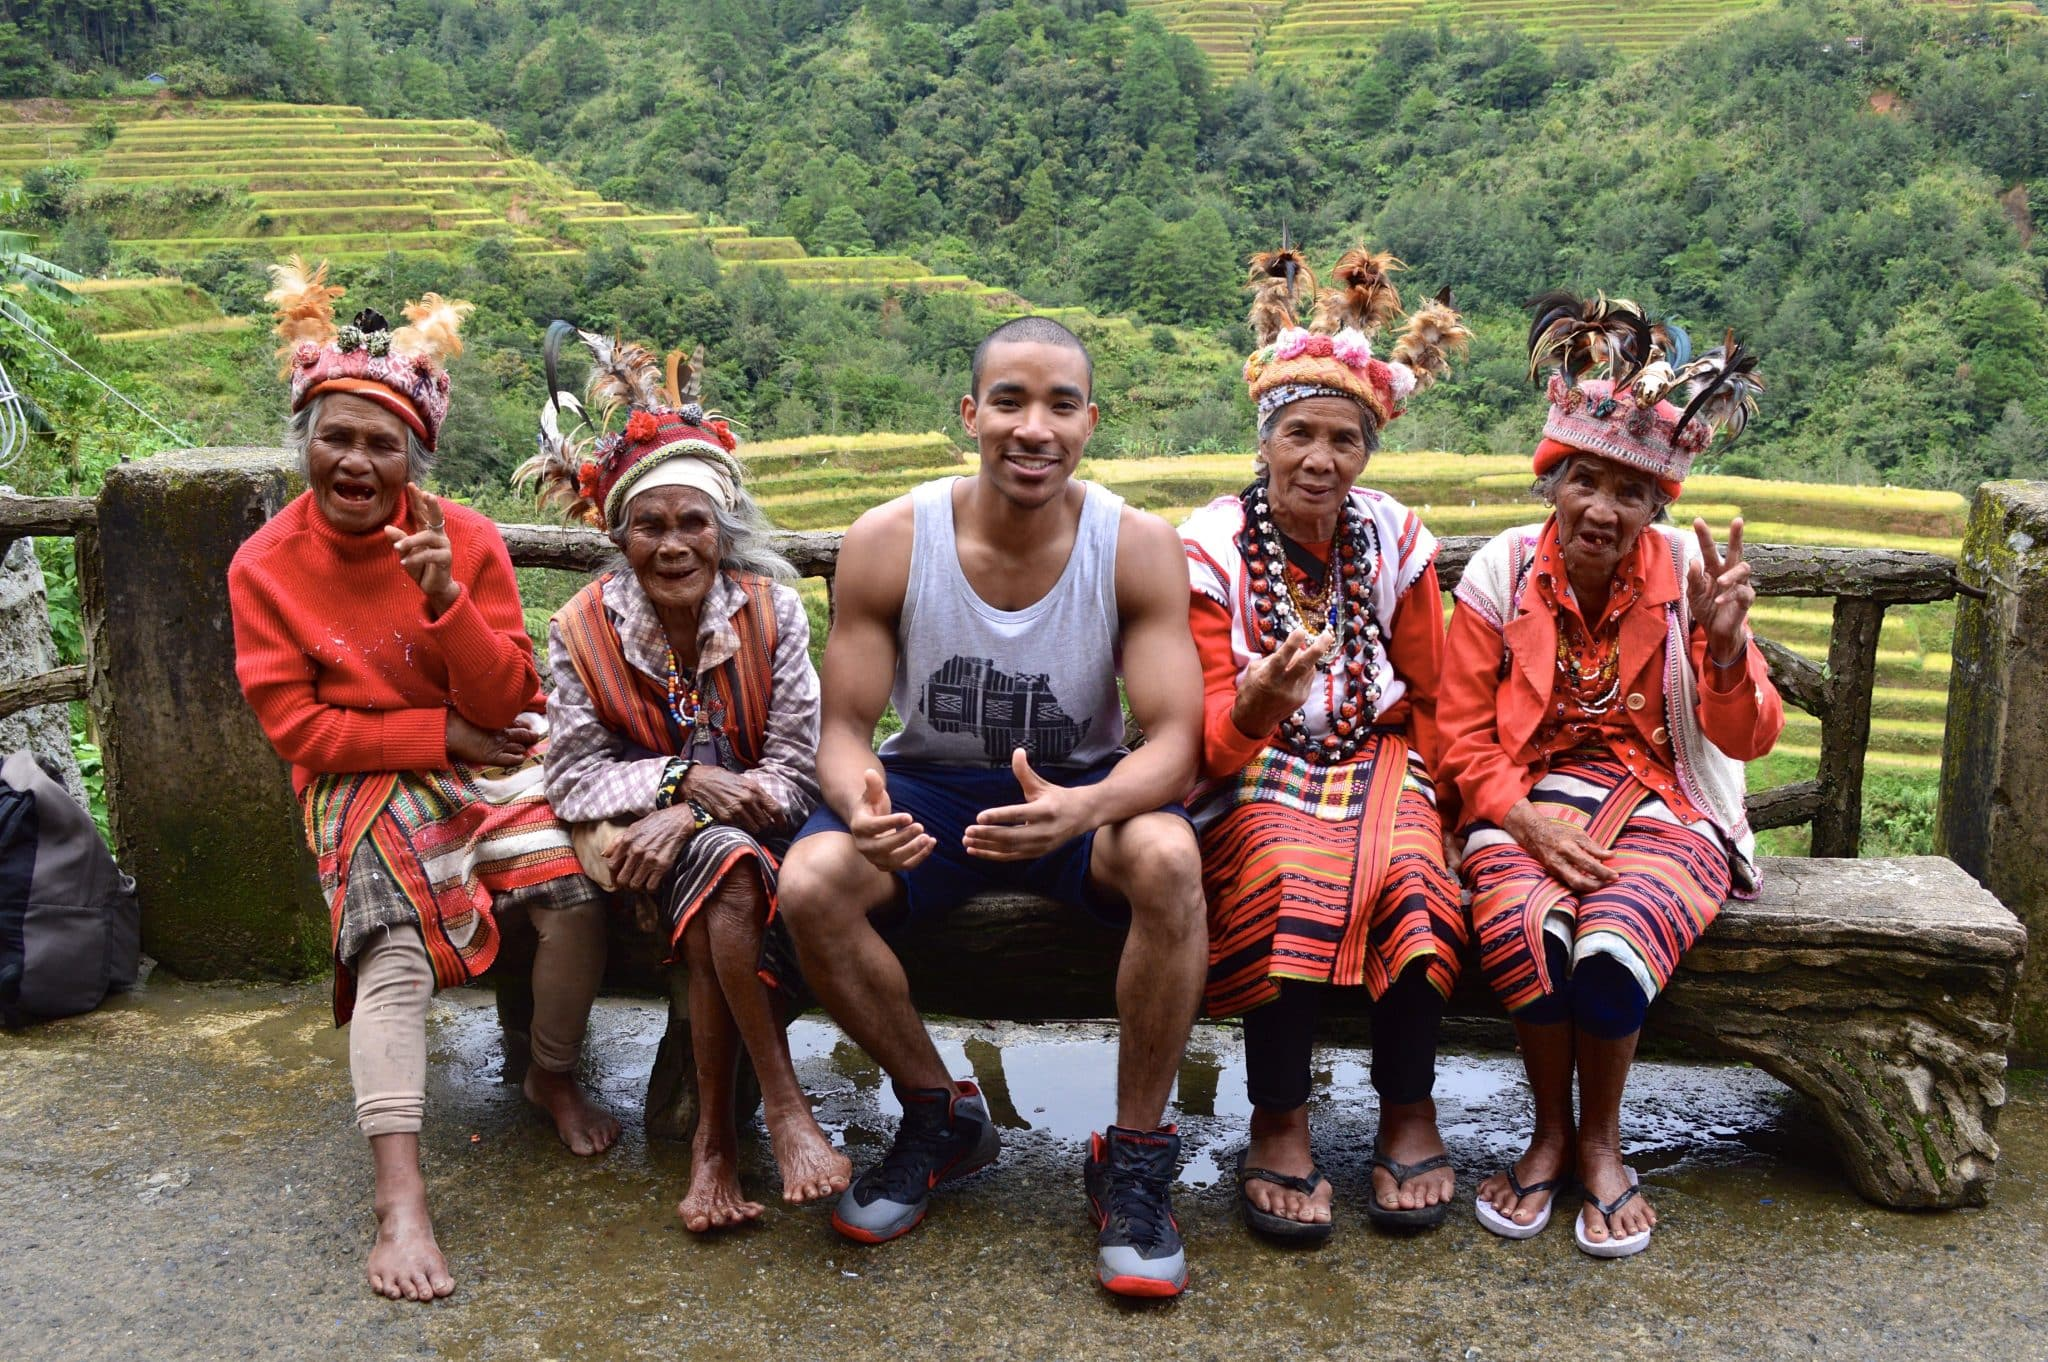 Tyreek with old women in the Philippines